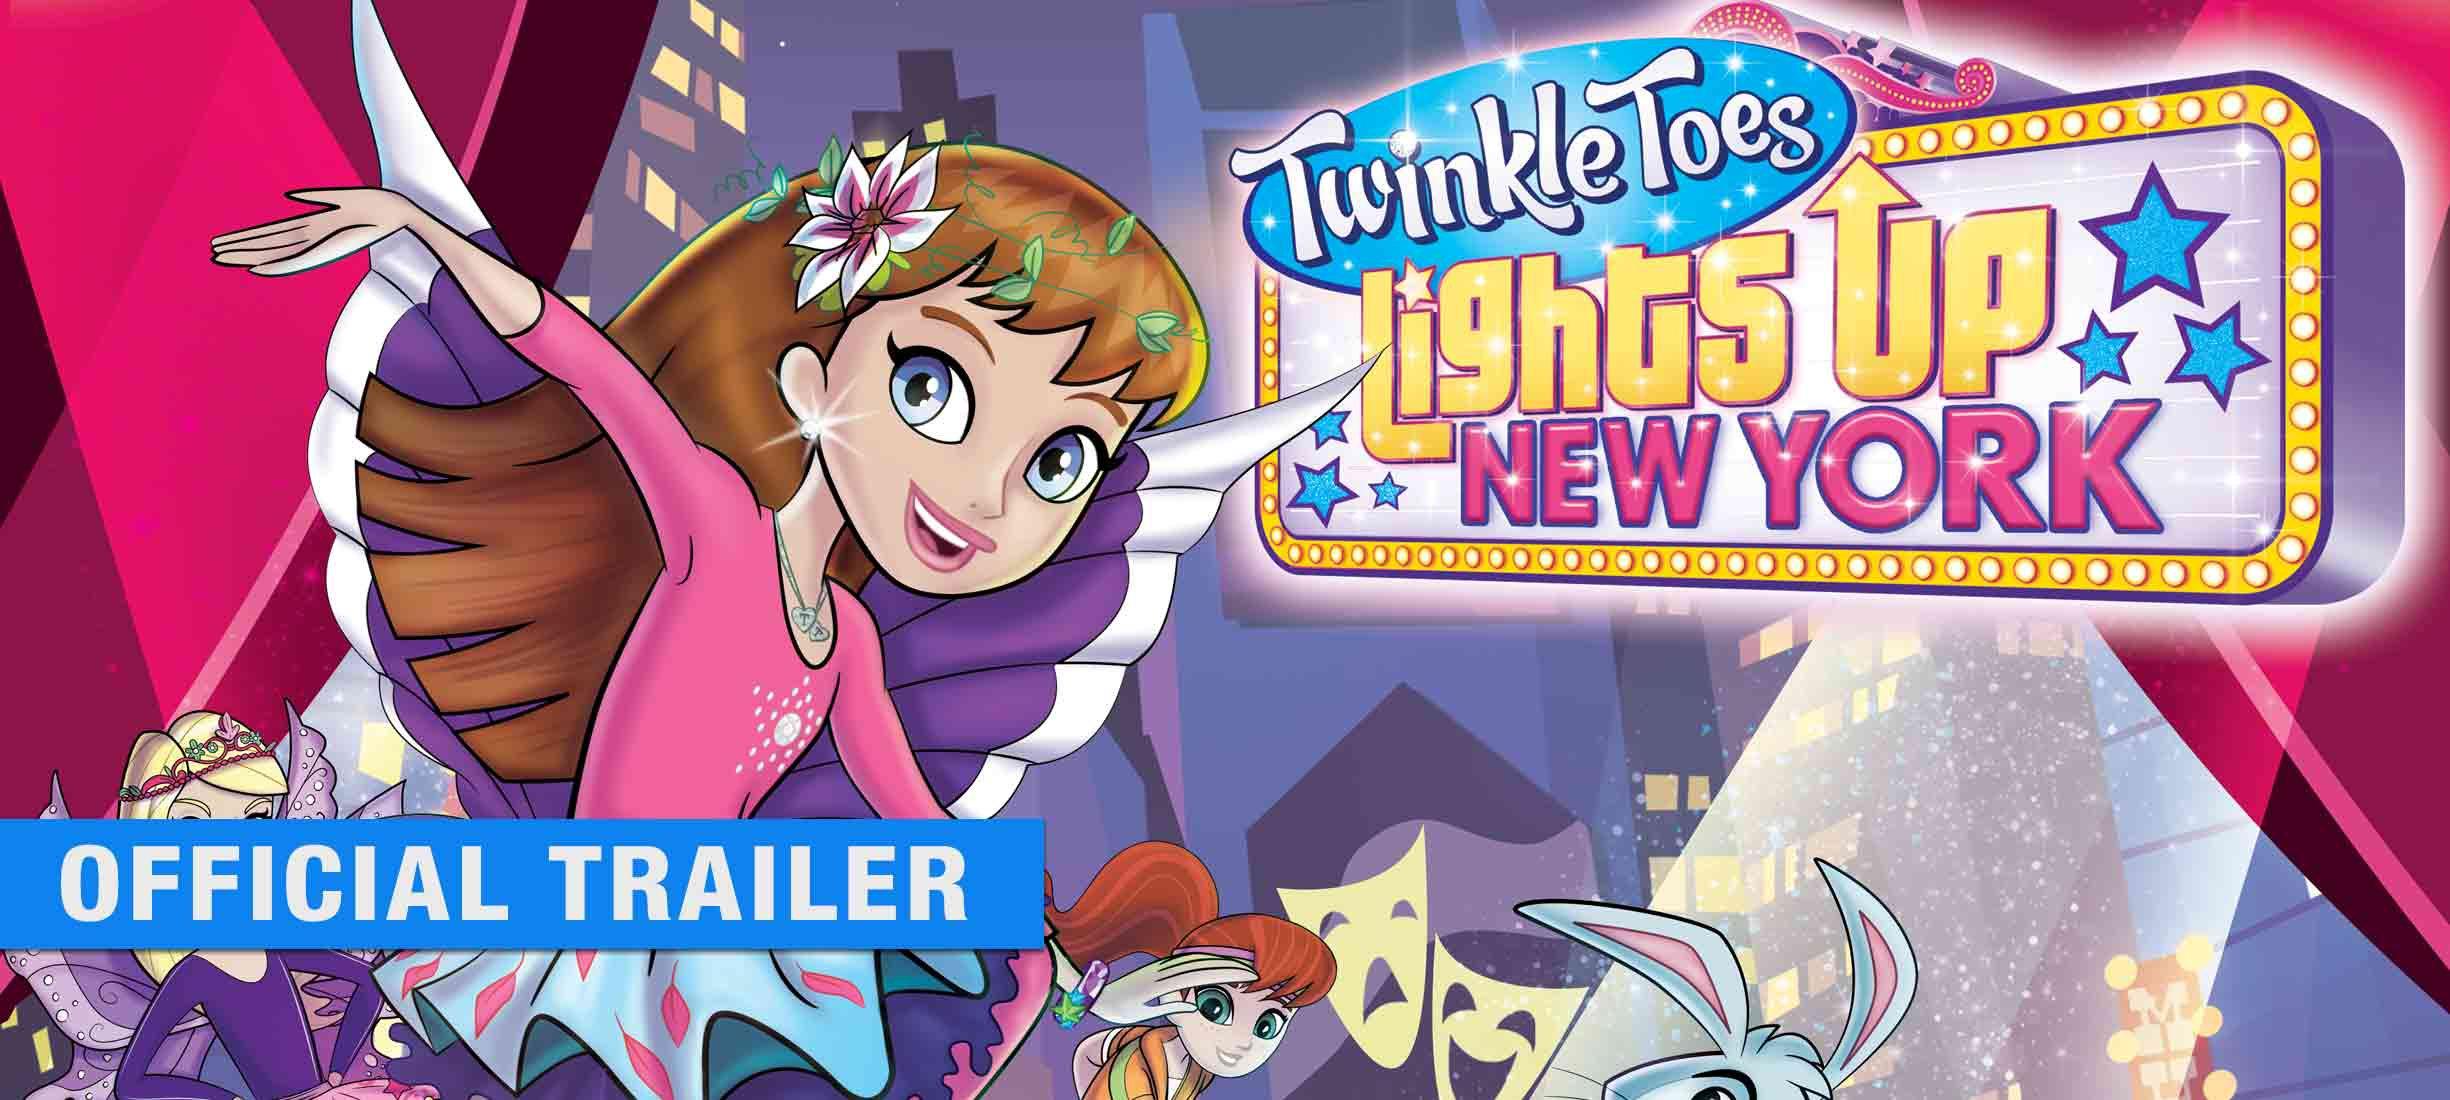 Twinkle Toes Lights Up New York: Trailer